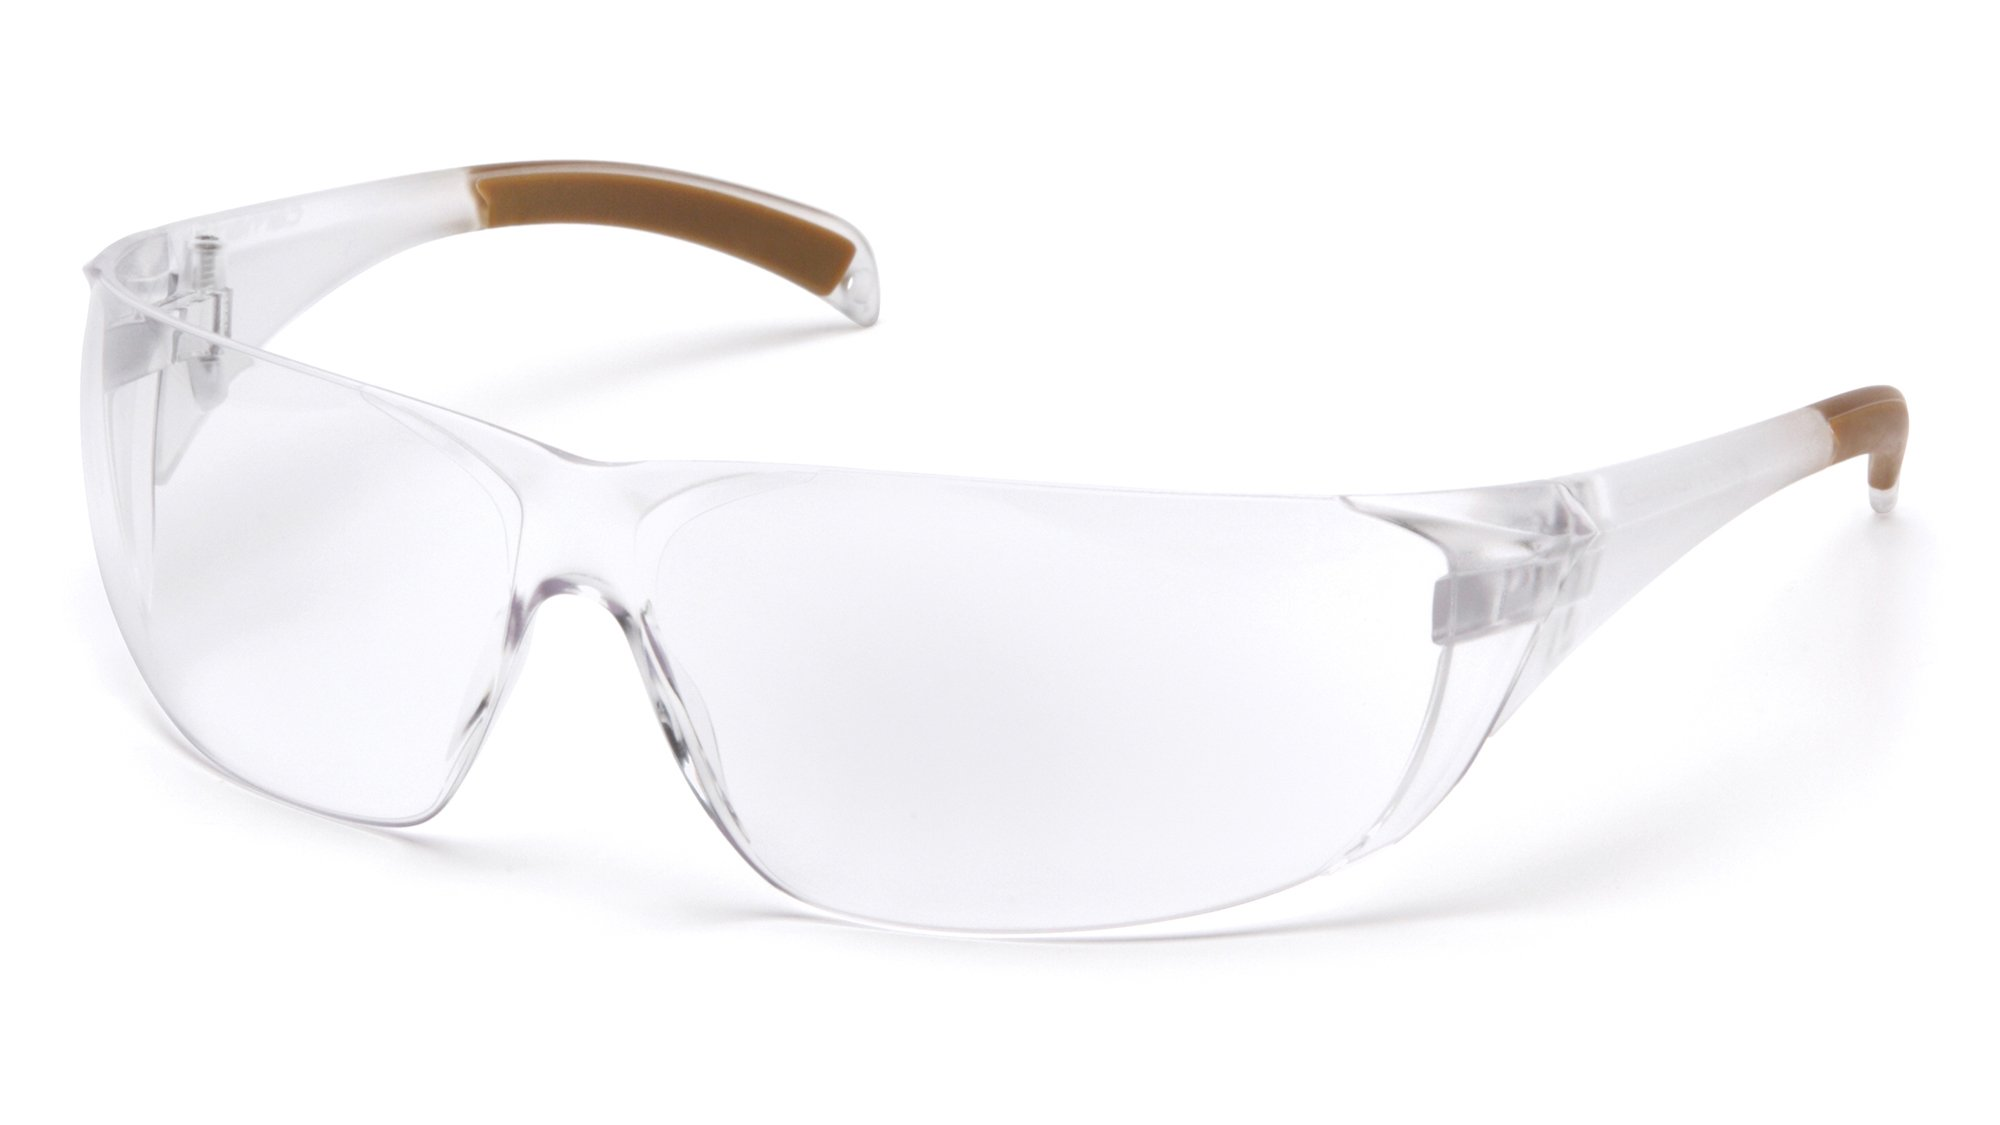 Carhartt CH110STCS Billings Safety Glasses, Clear Frame, Clear Anti-Fog Lens